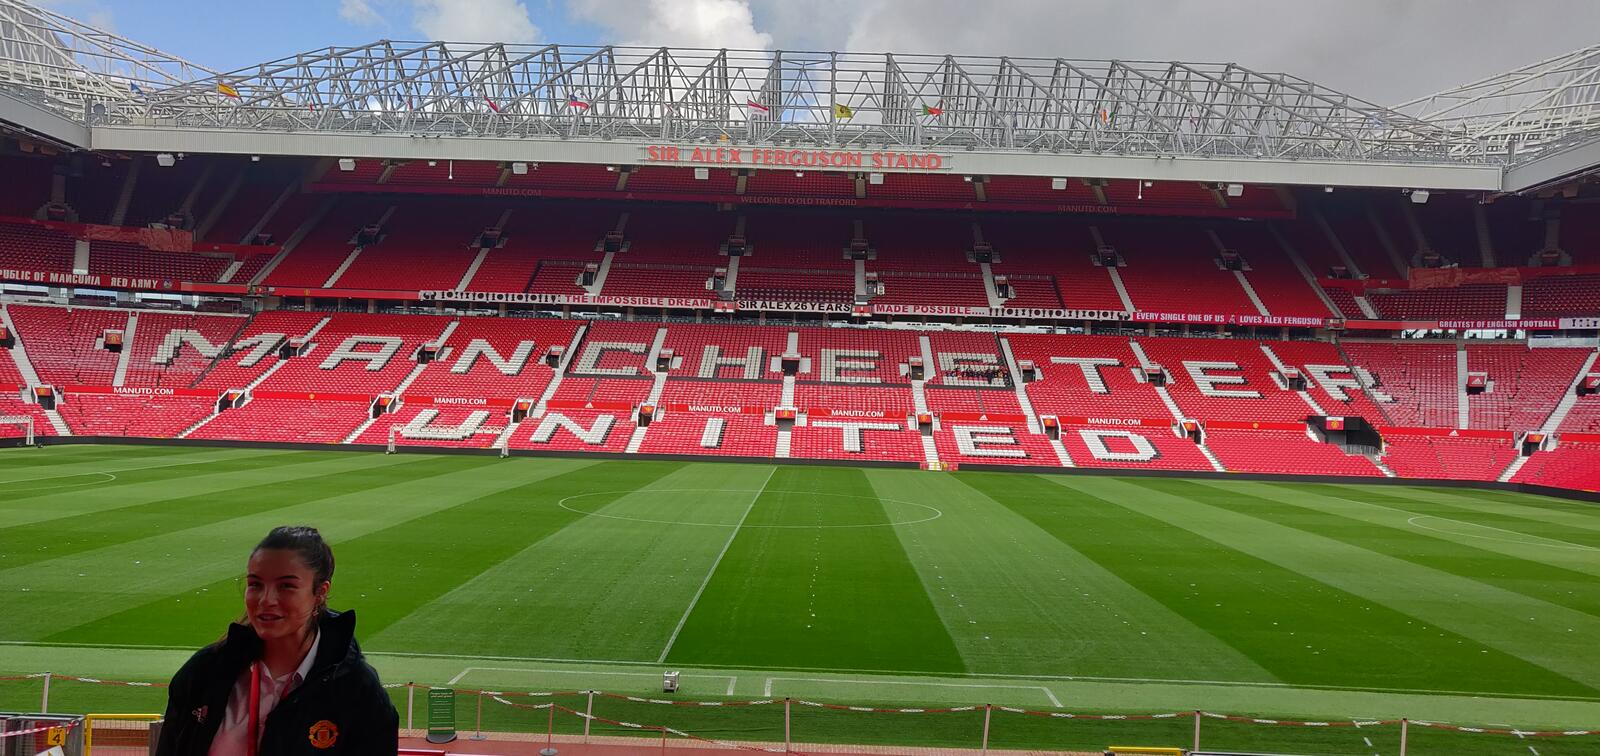 Manchester United Stadium of old tafford is greatest stadium of united kingdom stock images